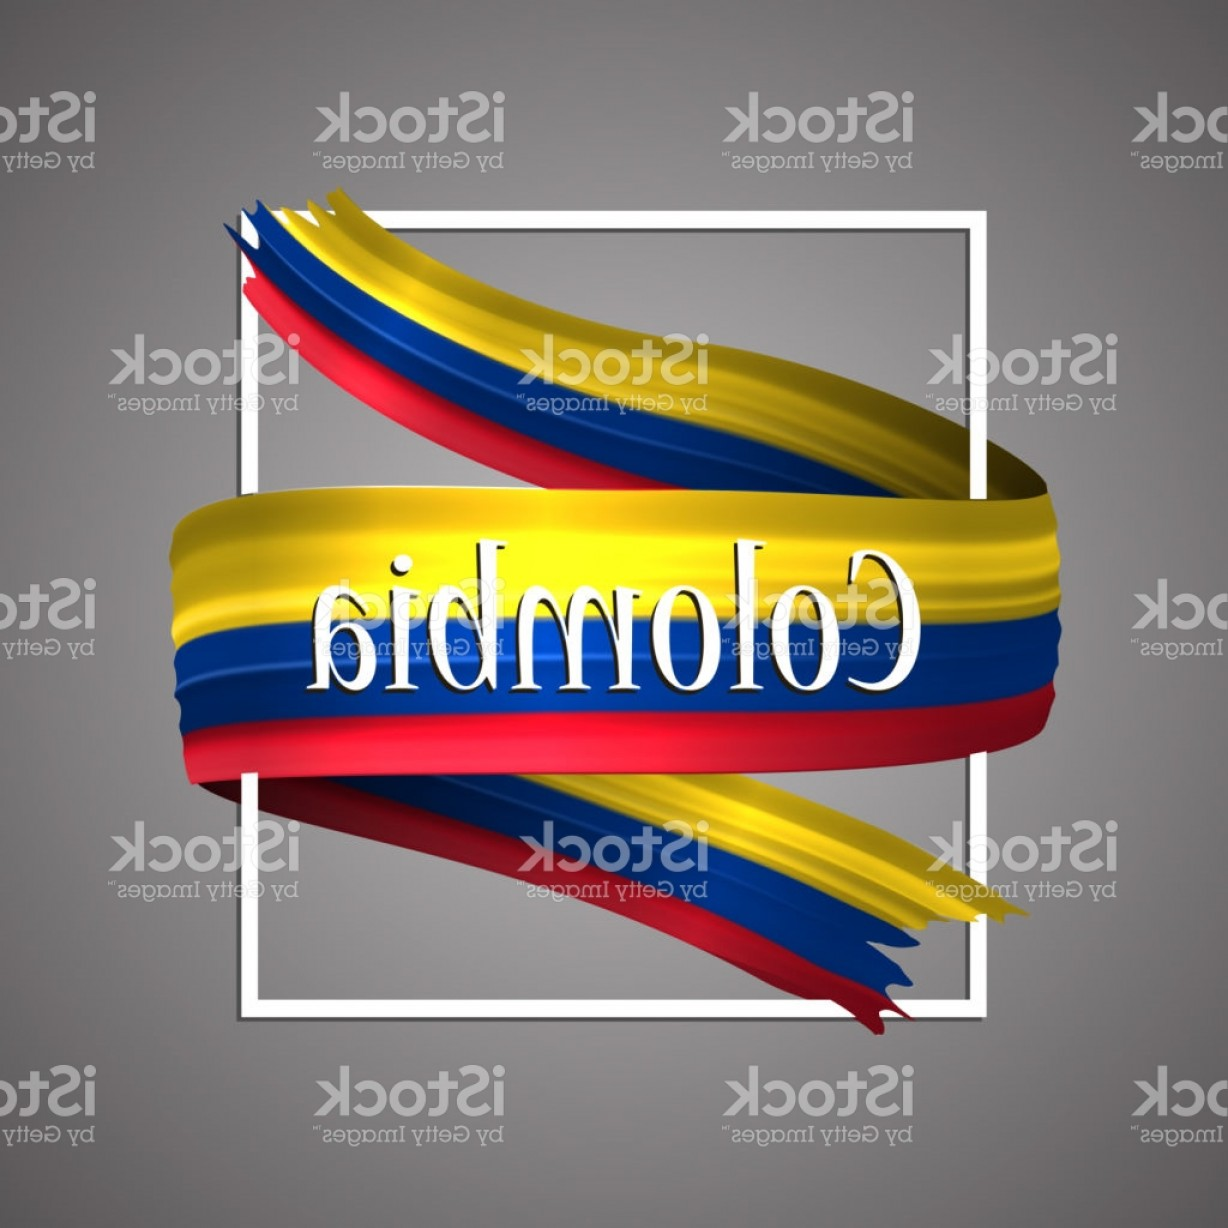 Columbia Logo Vector: Columbia Flag Official National Colors Colombia D Realistic Flag Ribbon Waving Gm